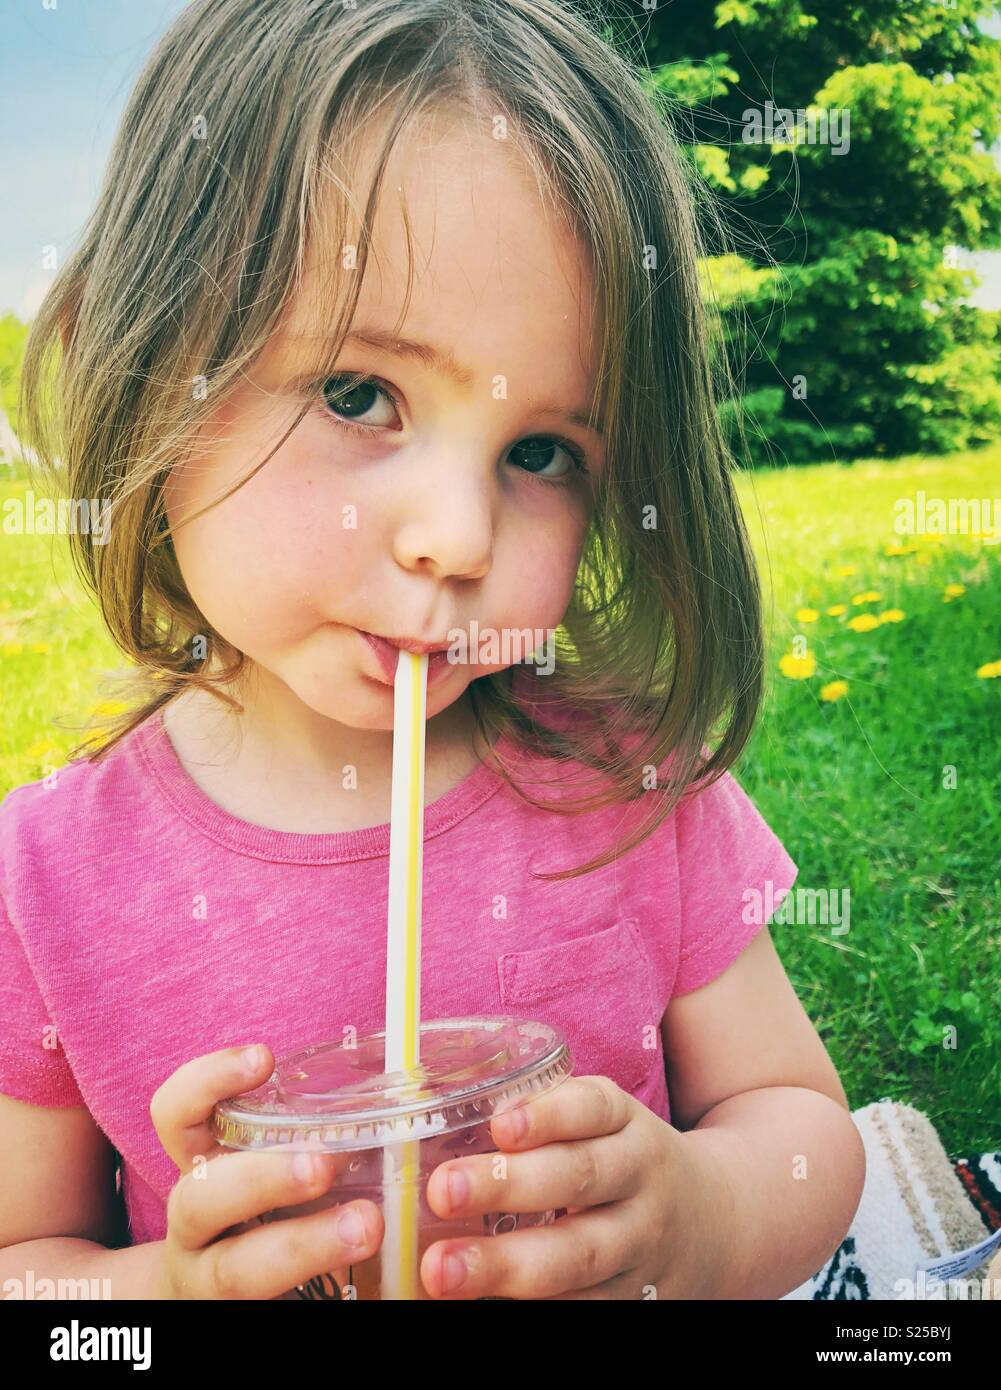 2 Year Old Toddler Girl Drinking Juice From Plastic Cup With Straw